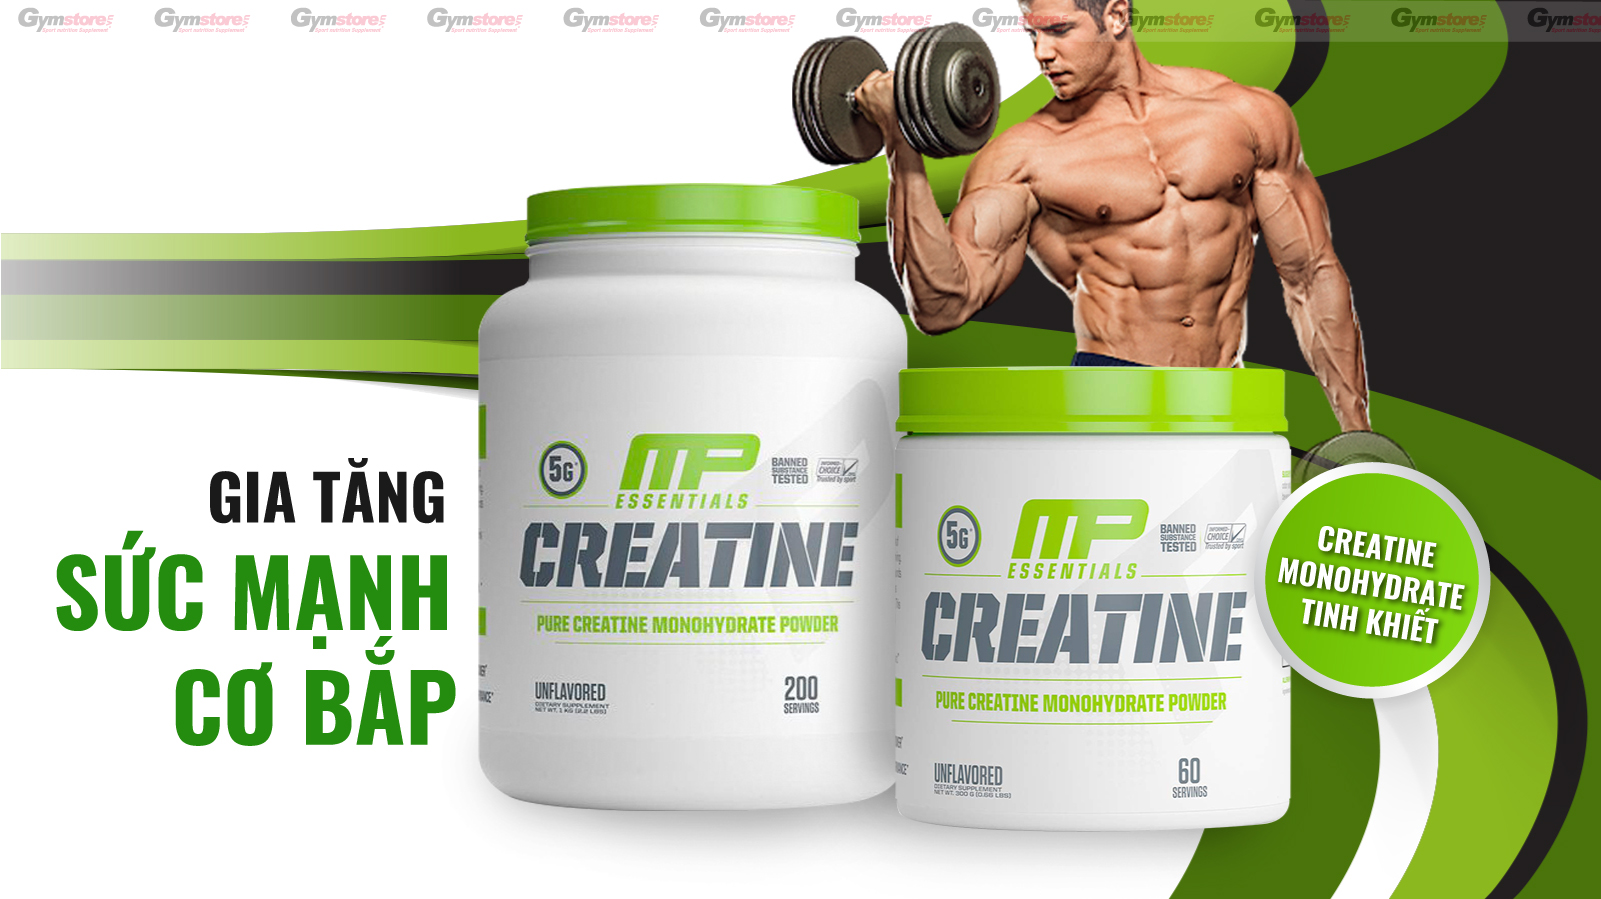 MUSCLEPHARM-ESSENTIALS-CREATINE-gia-tang-suc-manh-co-bap-gymstore